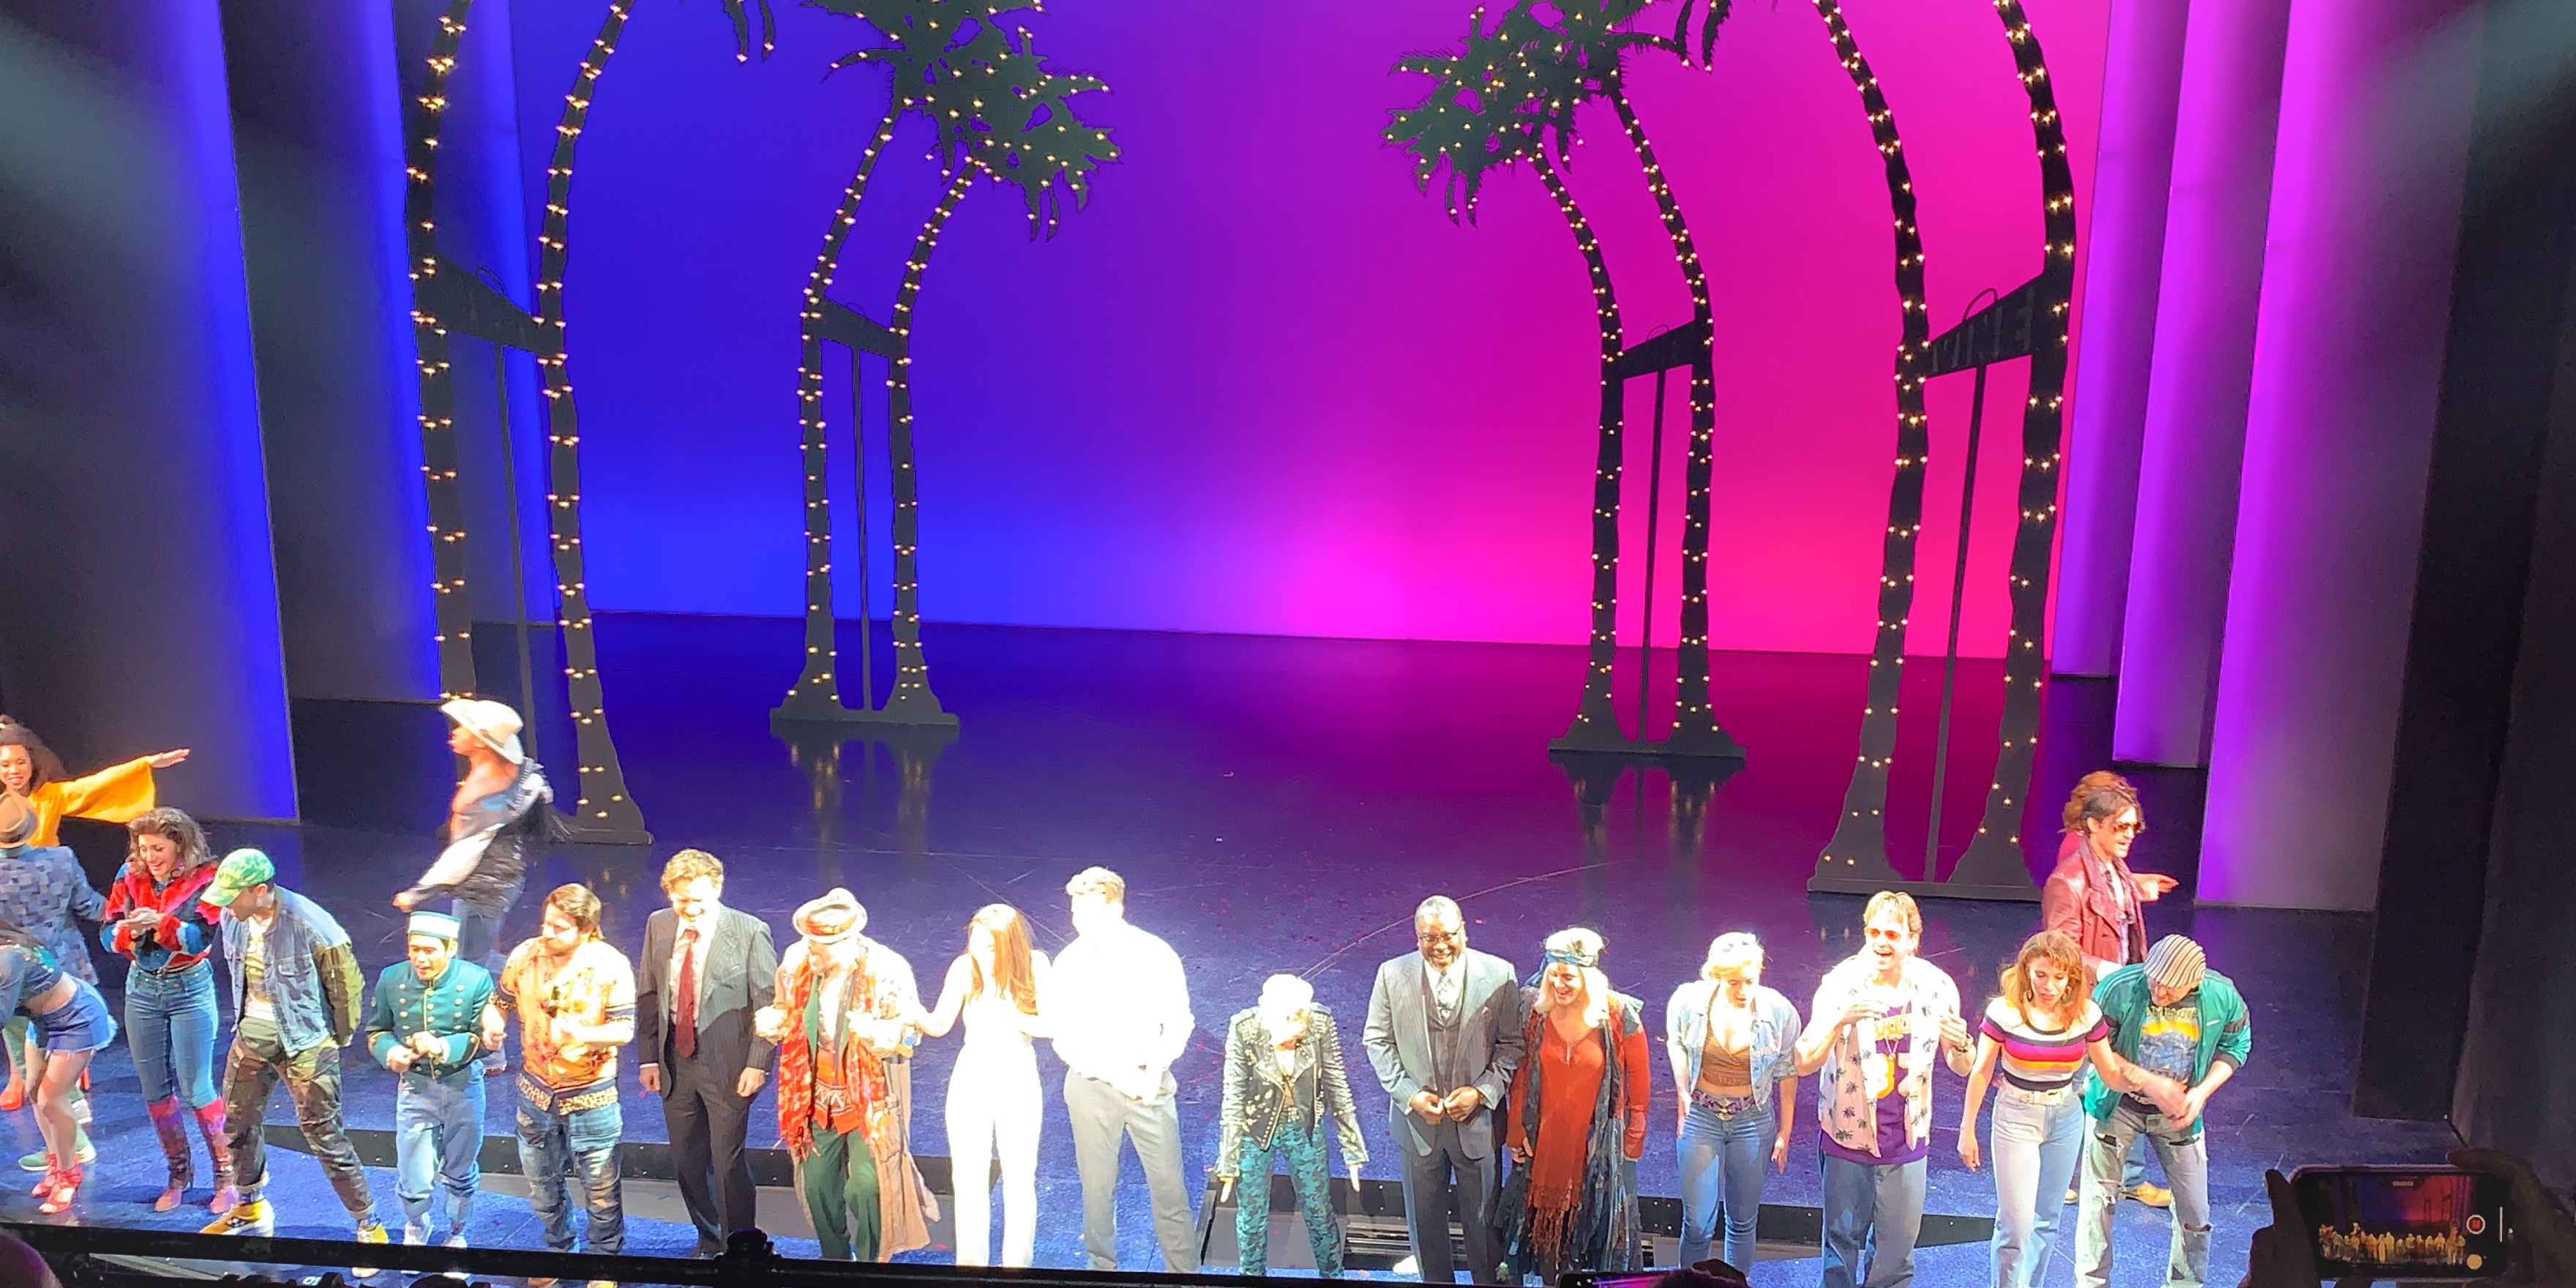 The Cast of Pretty Woman the Musical